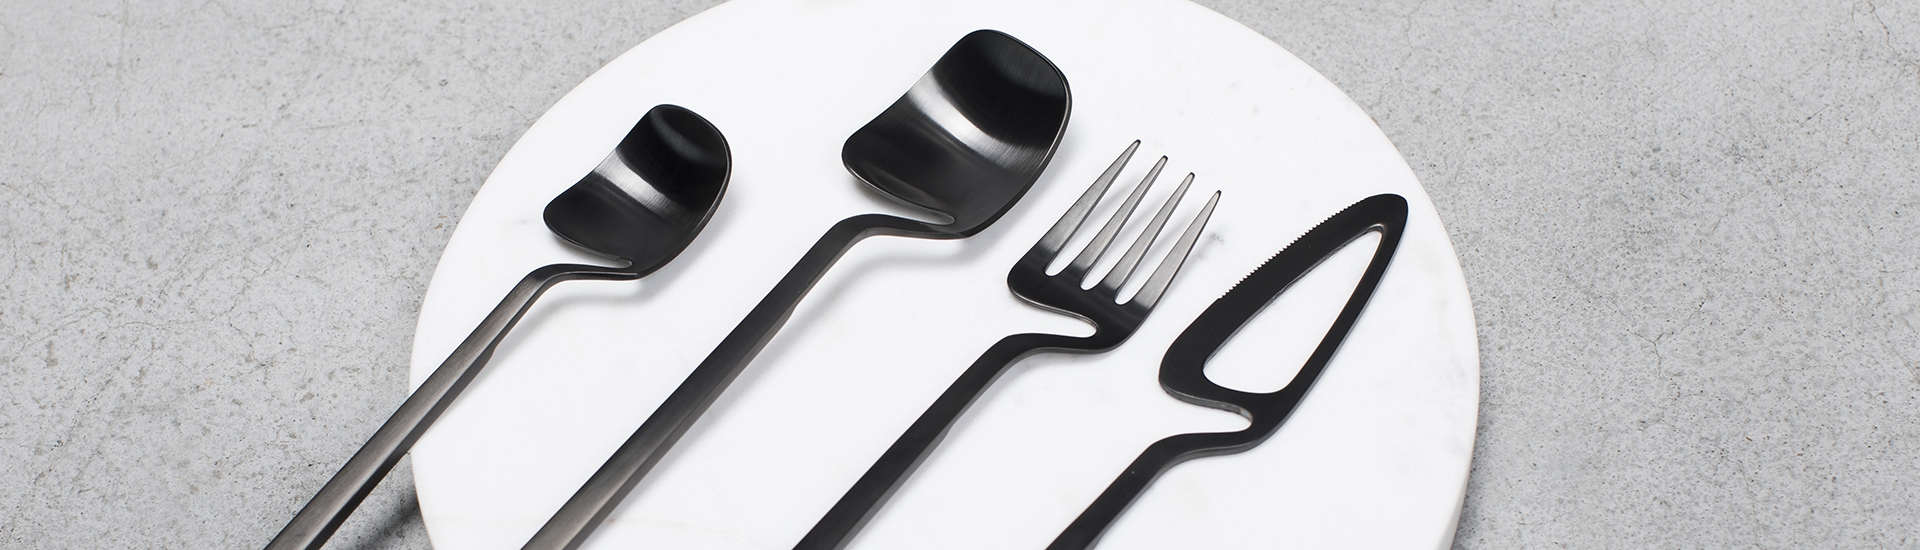 nendo skeleton cutlery - black